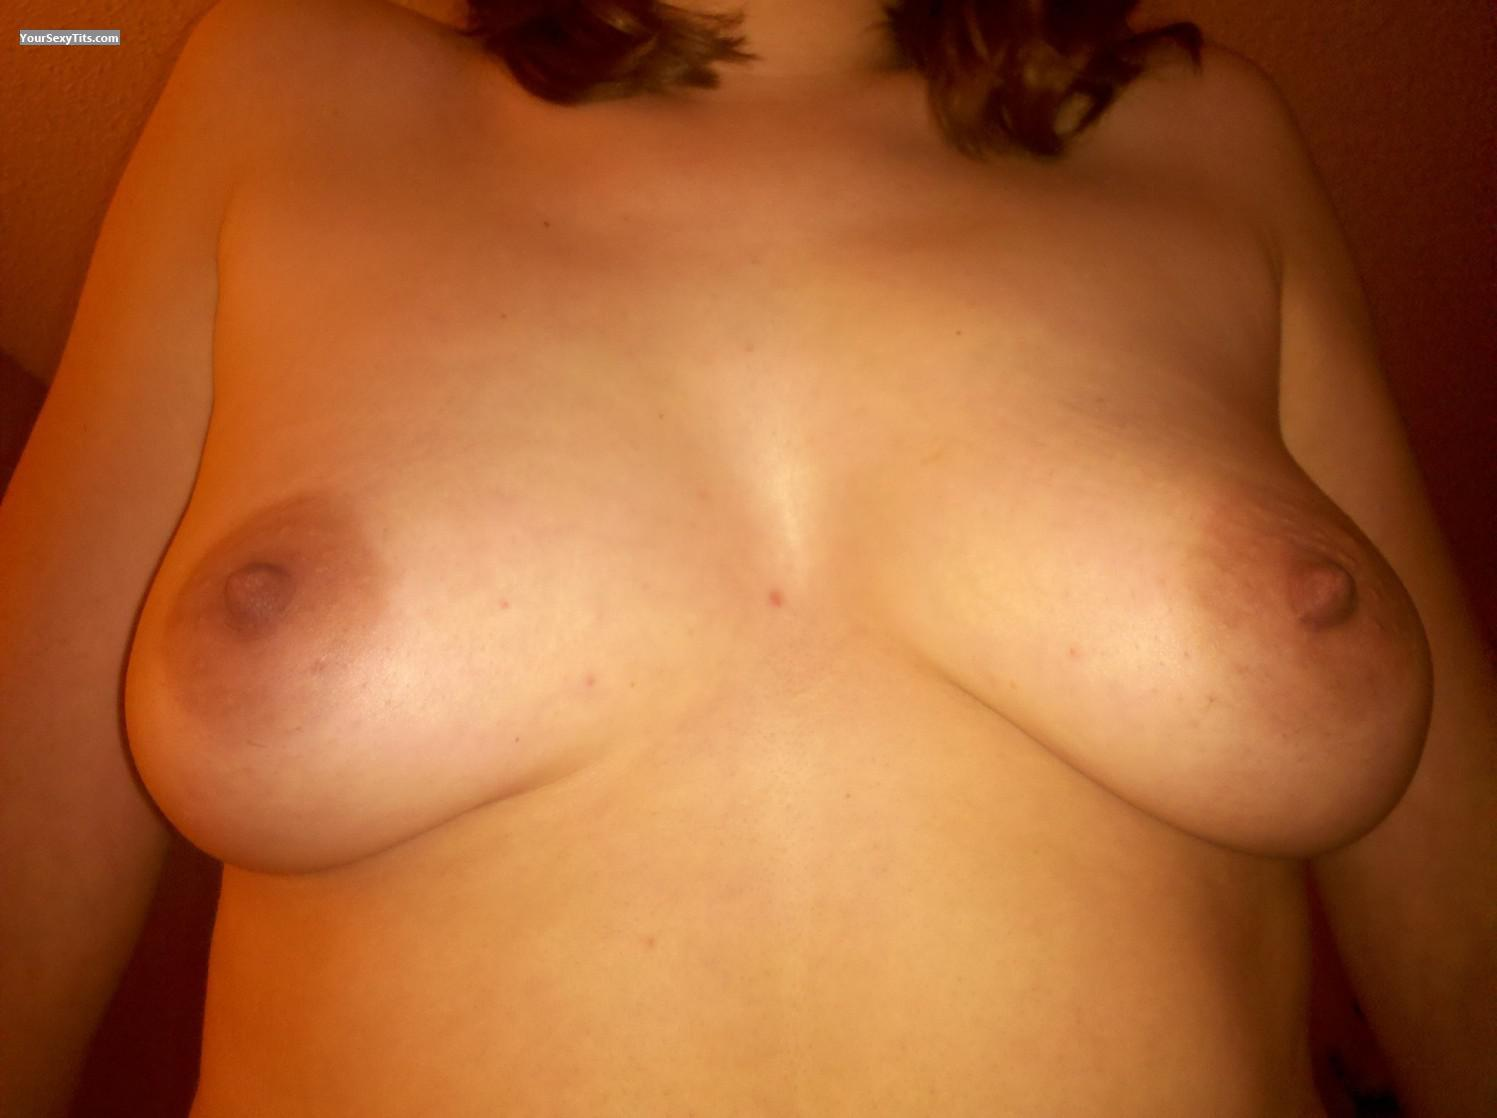 Big Tits Of My Wife ShyWifeCA